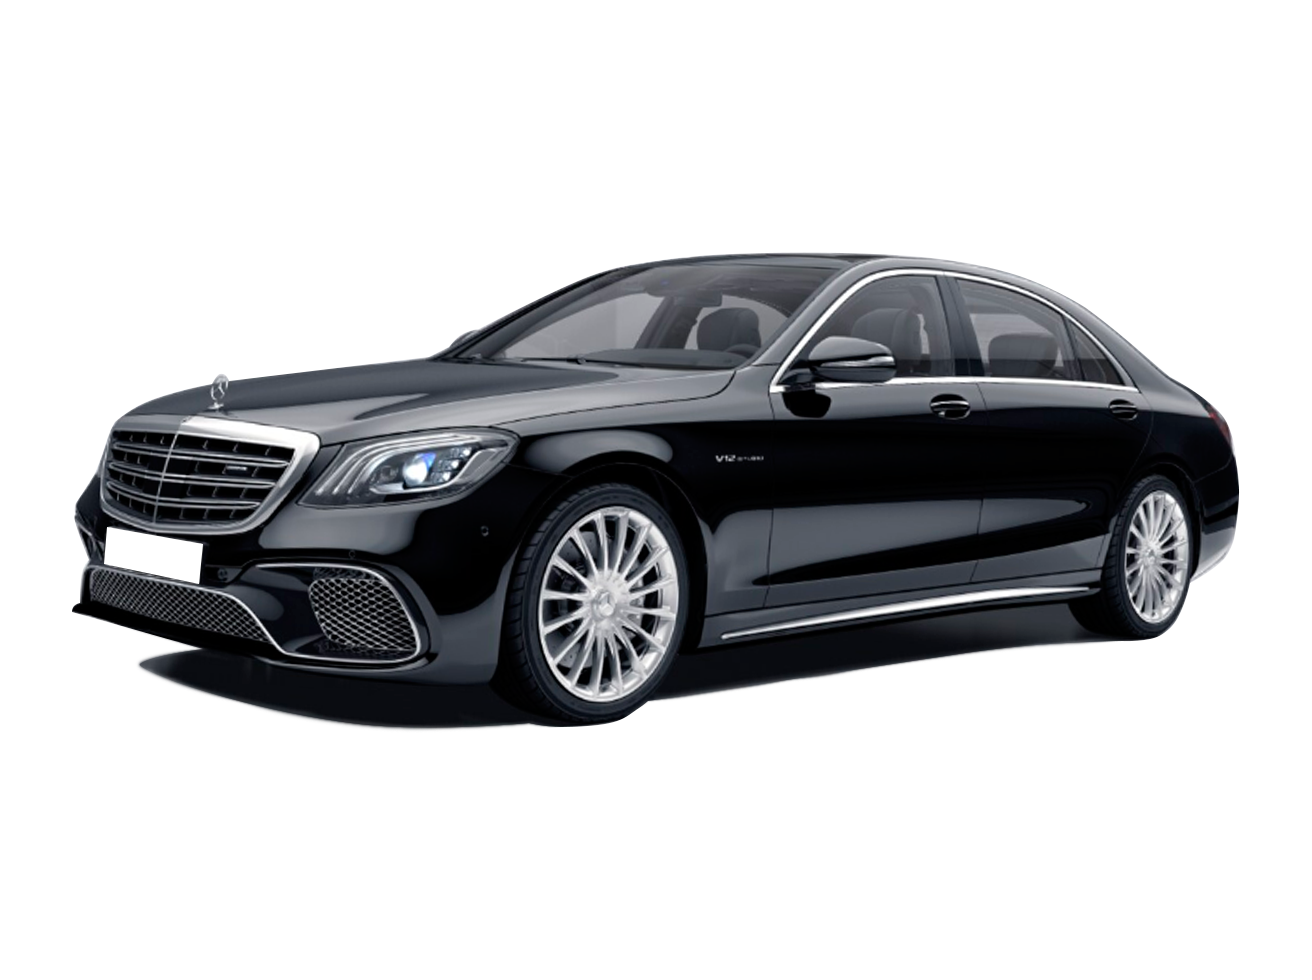 MERCEDES-BENZ - S 65 AMG - 6.0 V12 TURBO GASOLINA L SPEEDSHIFT